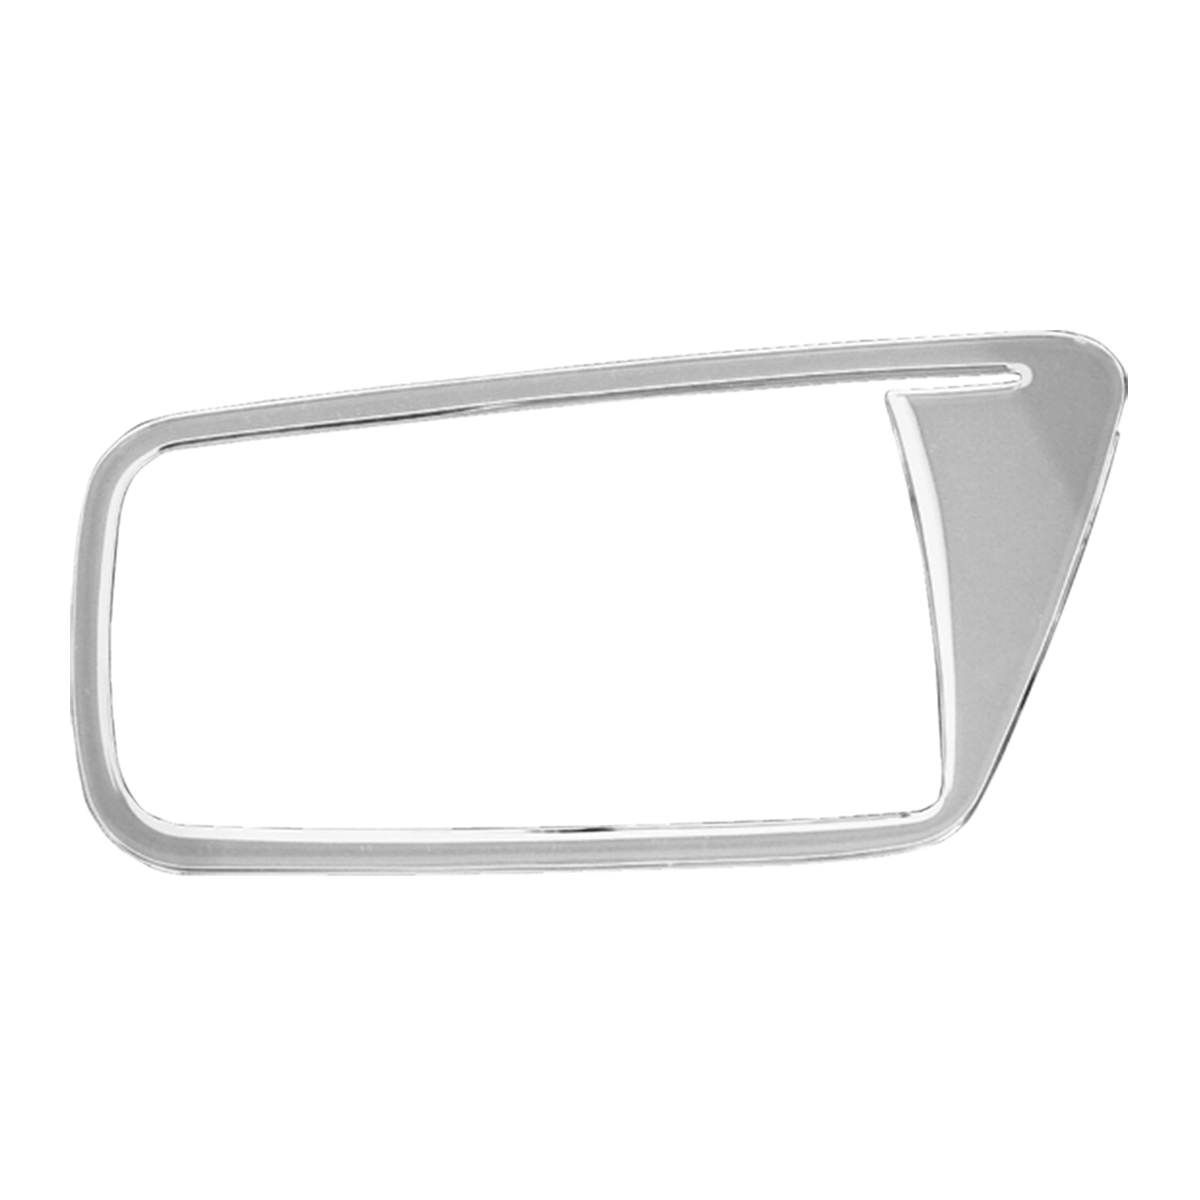 68928 KW Chrome Soft Plastic Passenger Side Door Ring